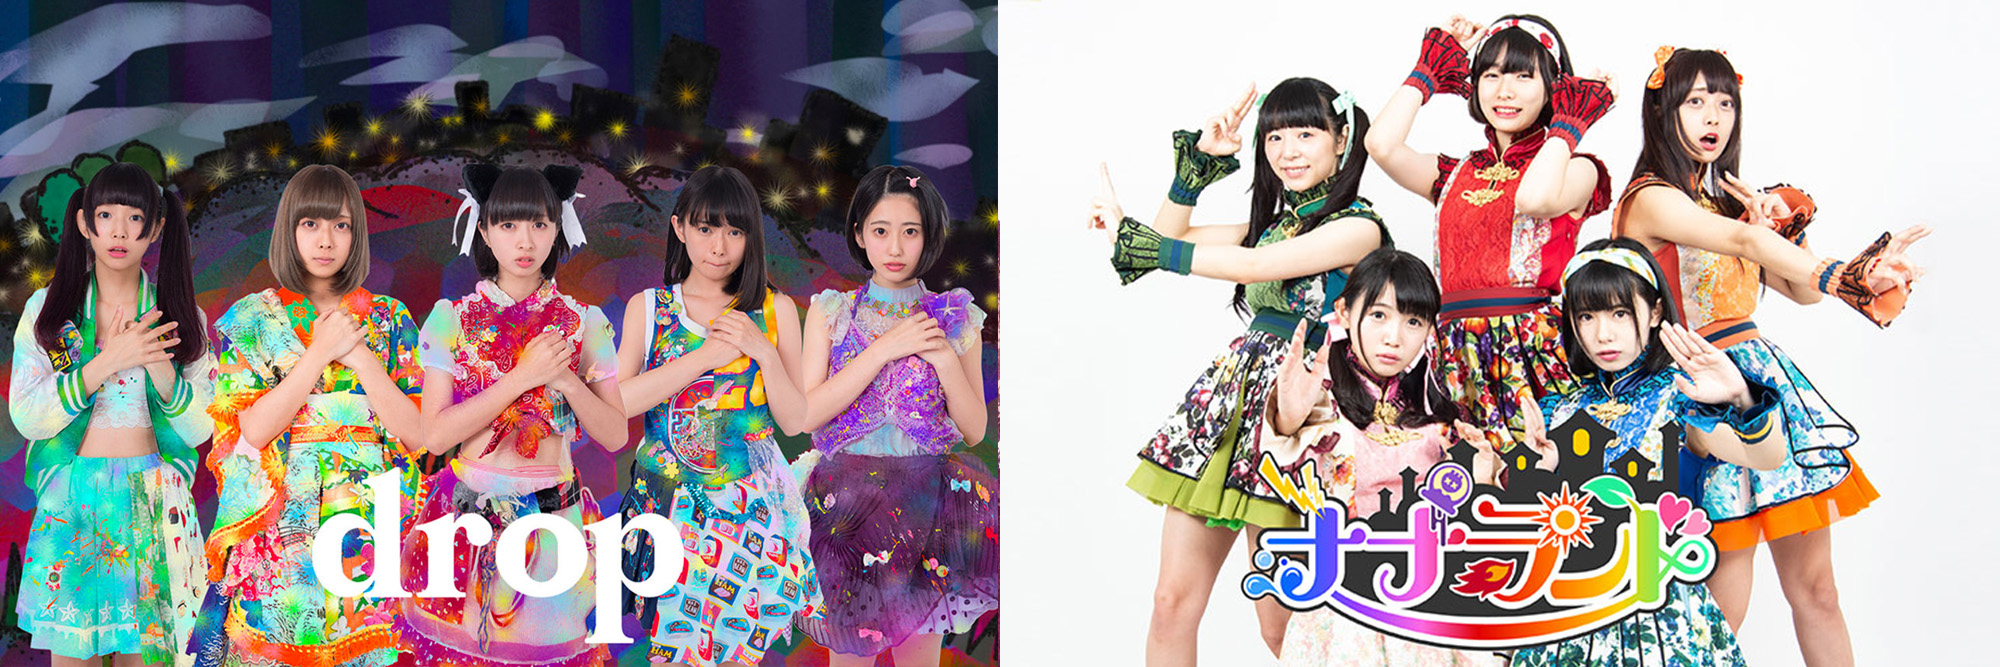 drop nanaland idol group profile pictures bonjour idol